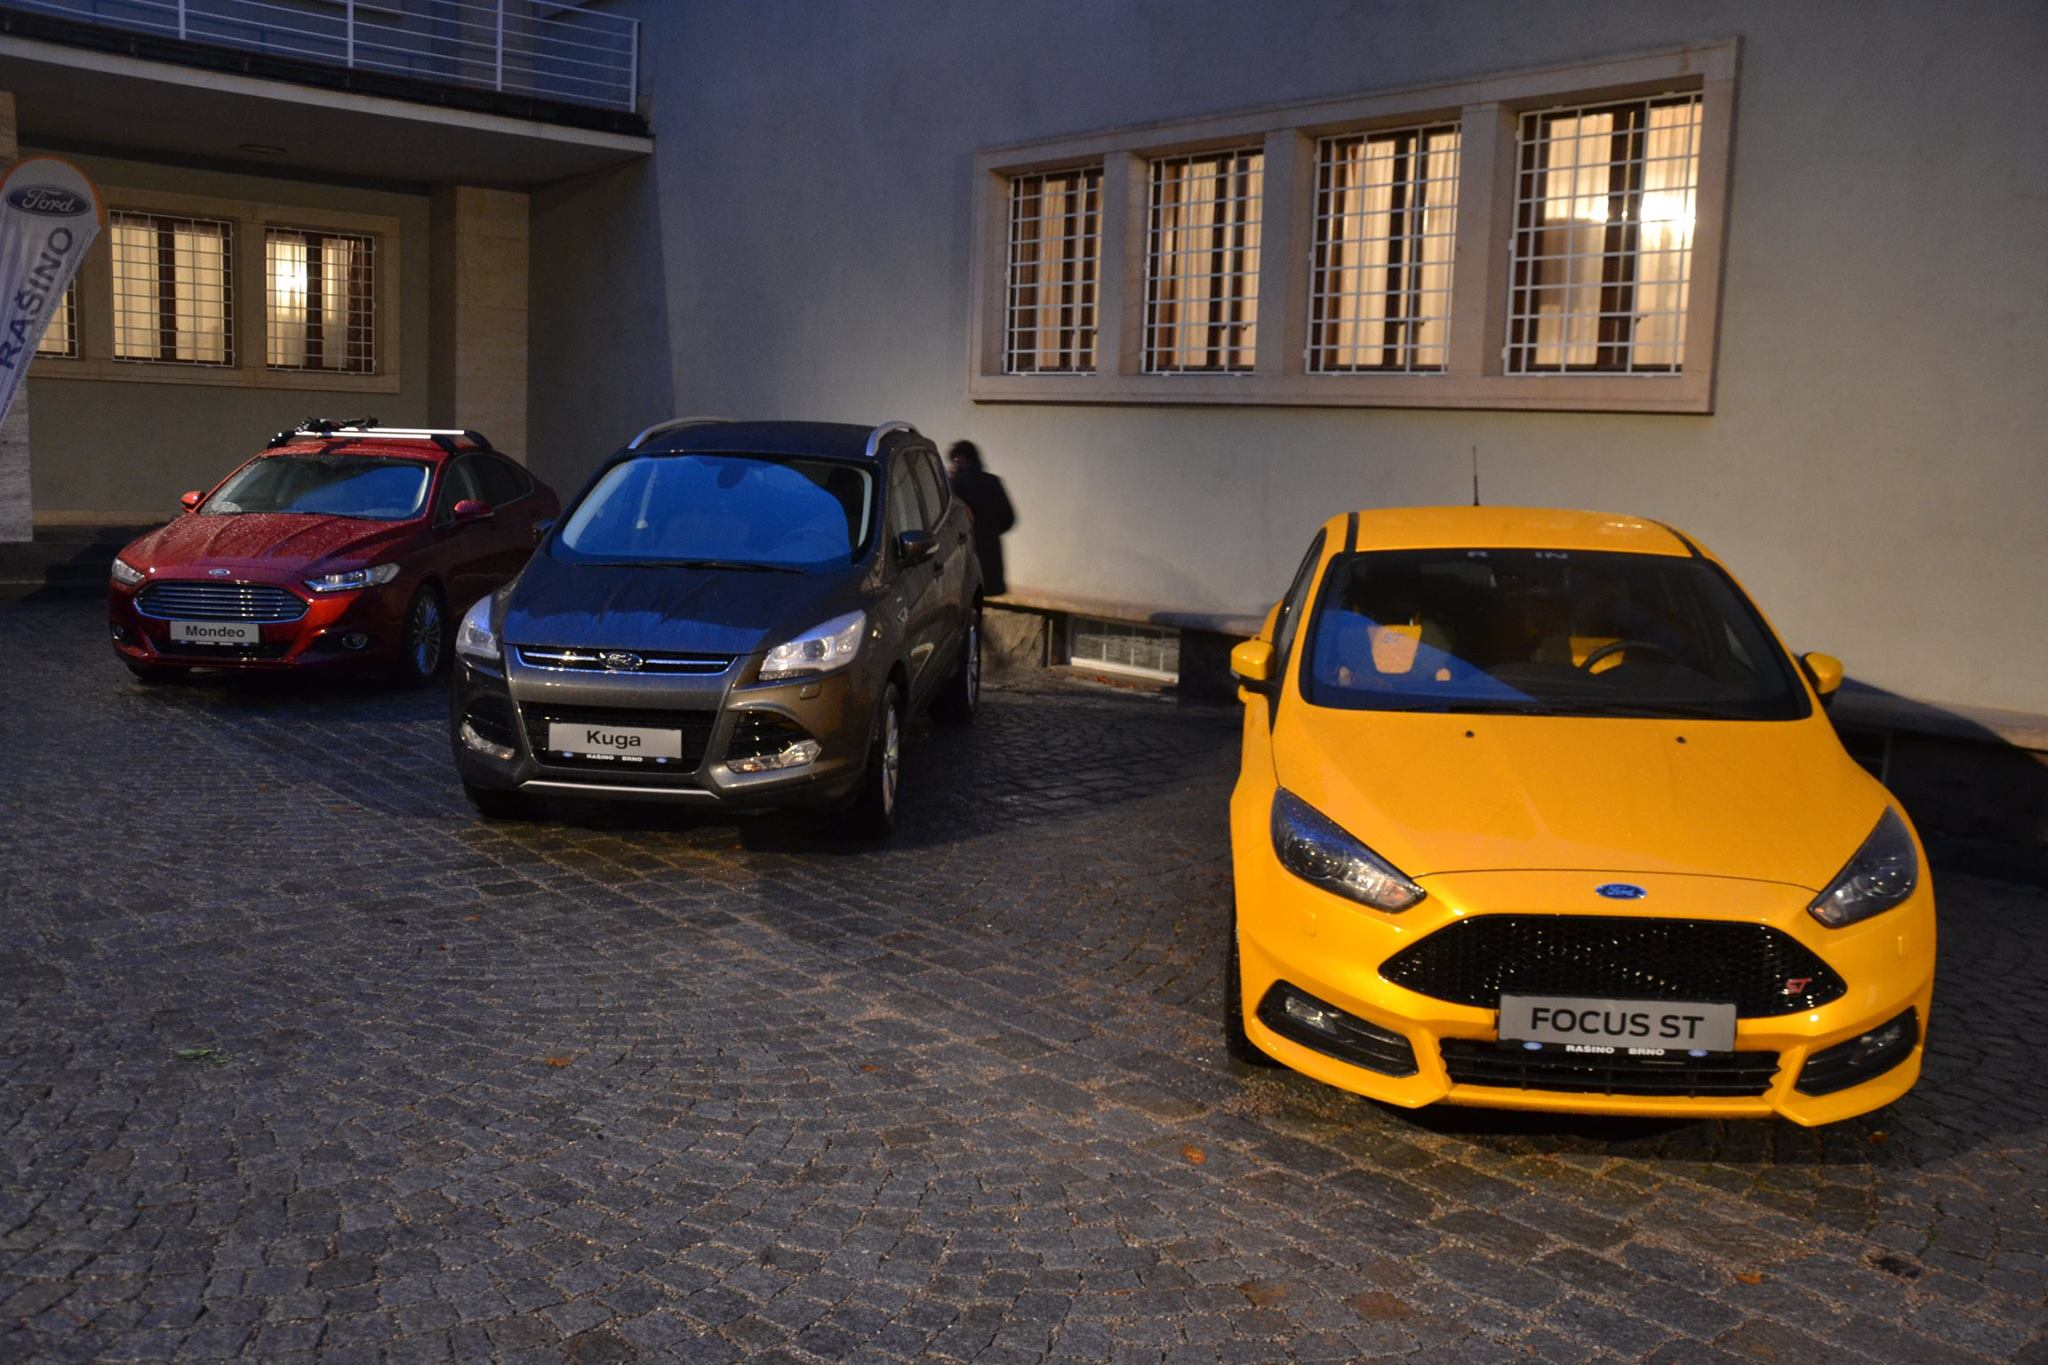 Ford Focus ST, Ford Kuga a Ford Mondeo - Rašino Brno